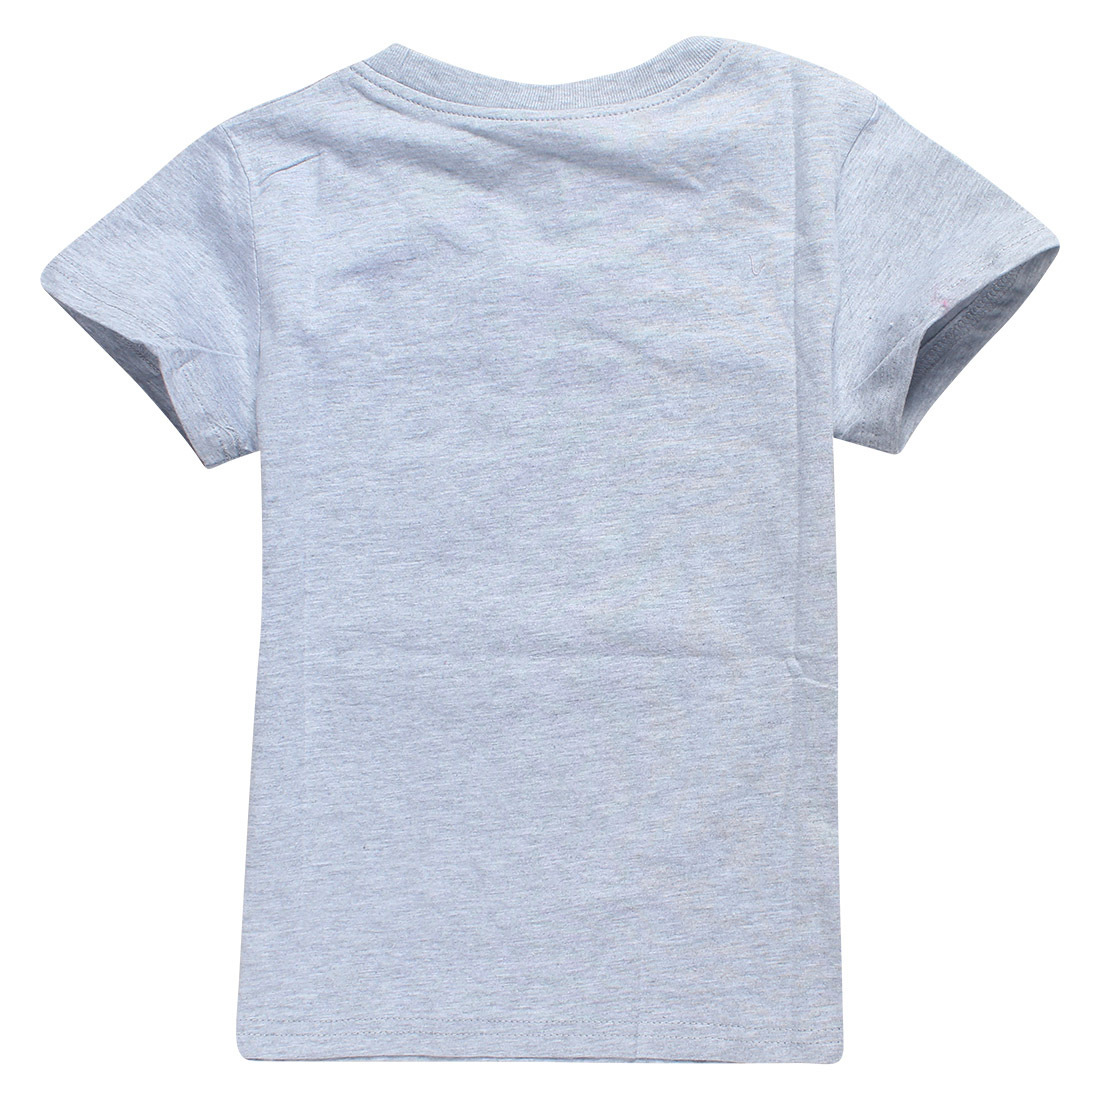 Roblox Theme New Arrival R Logo Grey Kids And 50 Similar Items - r roblox t shirt